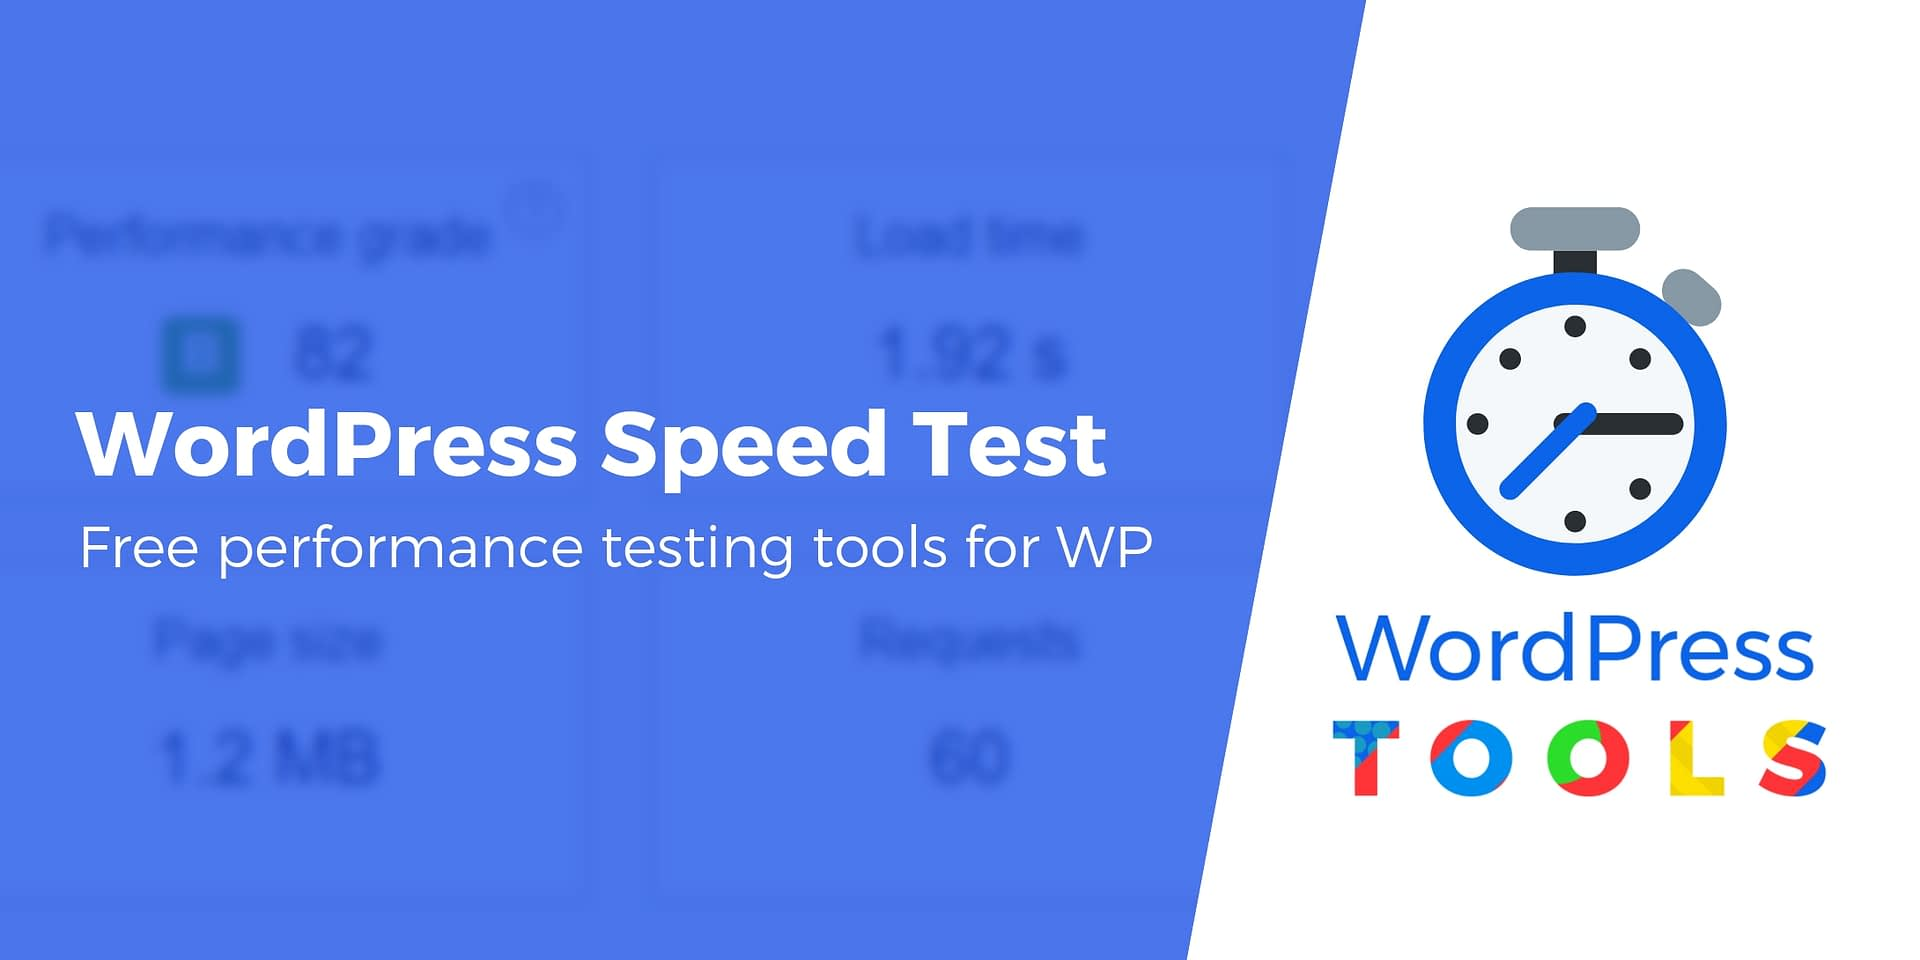 5 Best WordPress Speed Test Tools: How to Find Your Site's